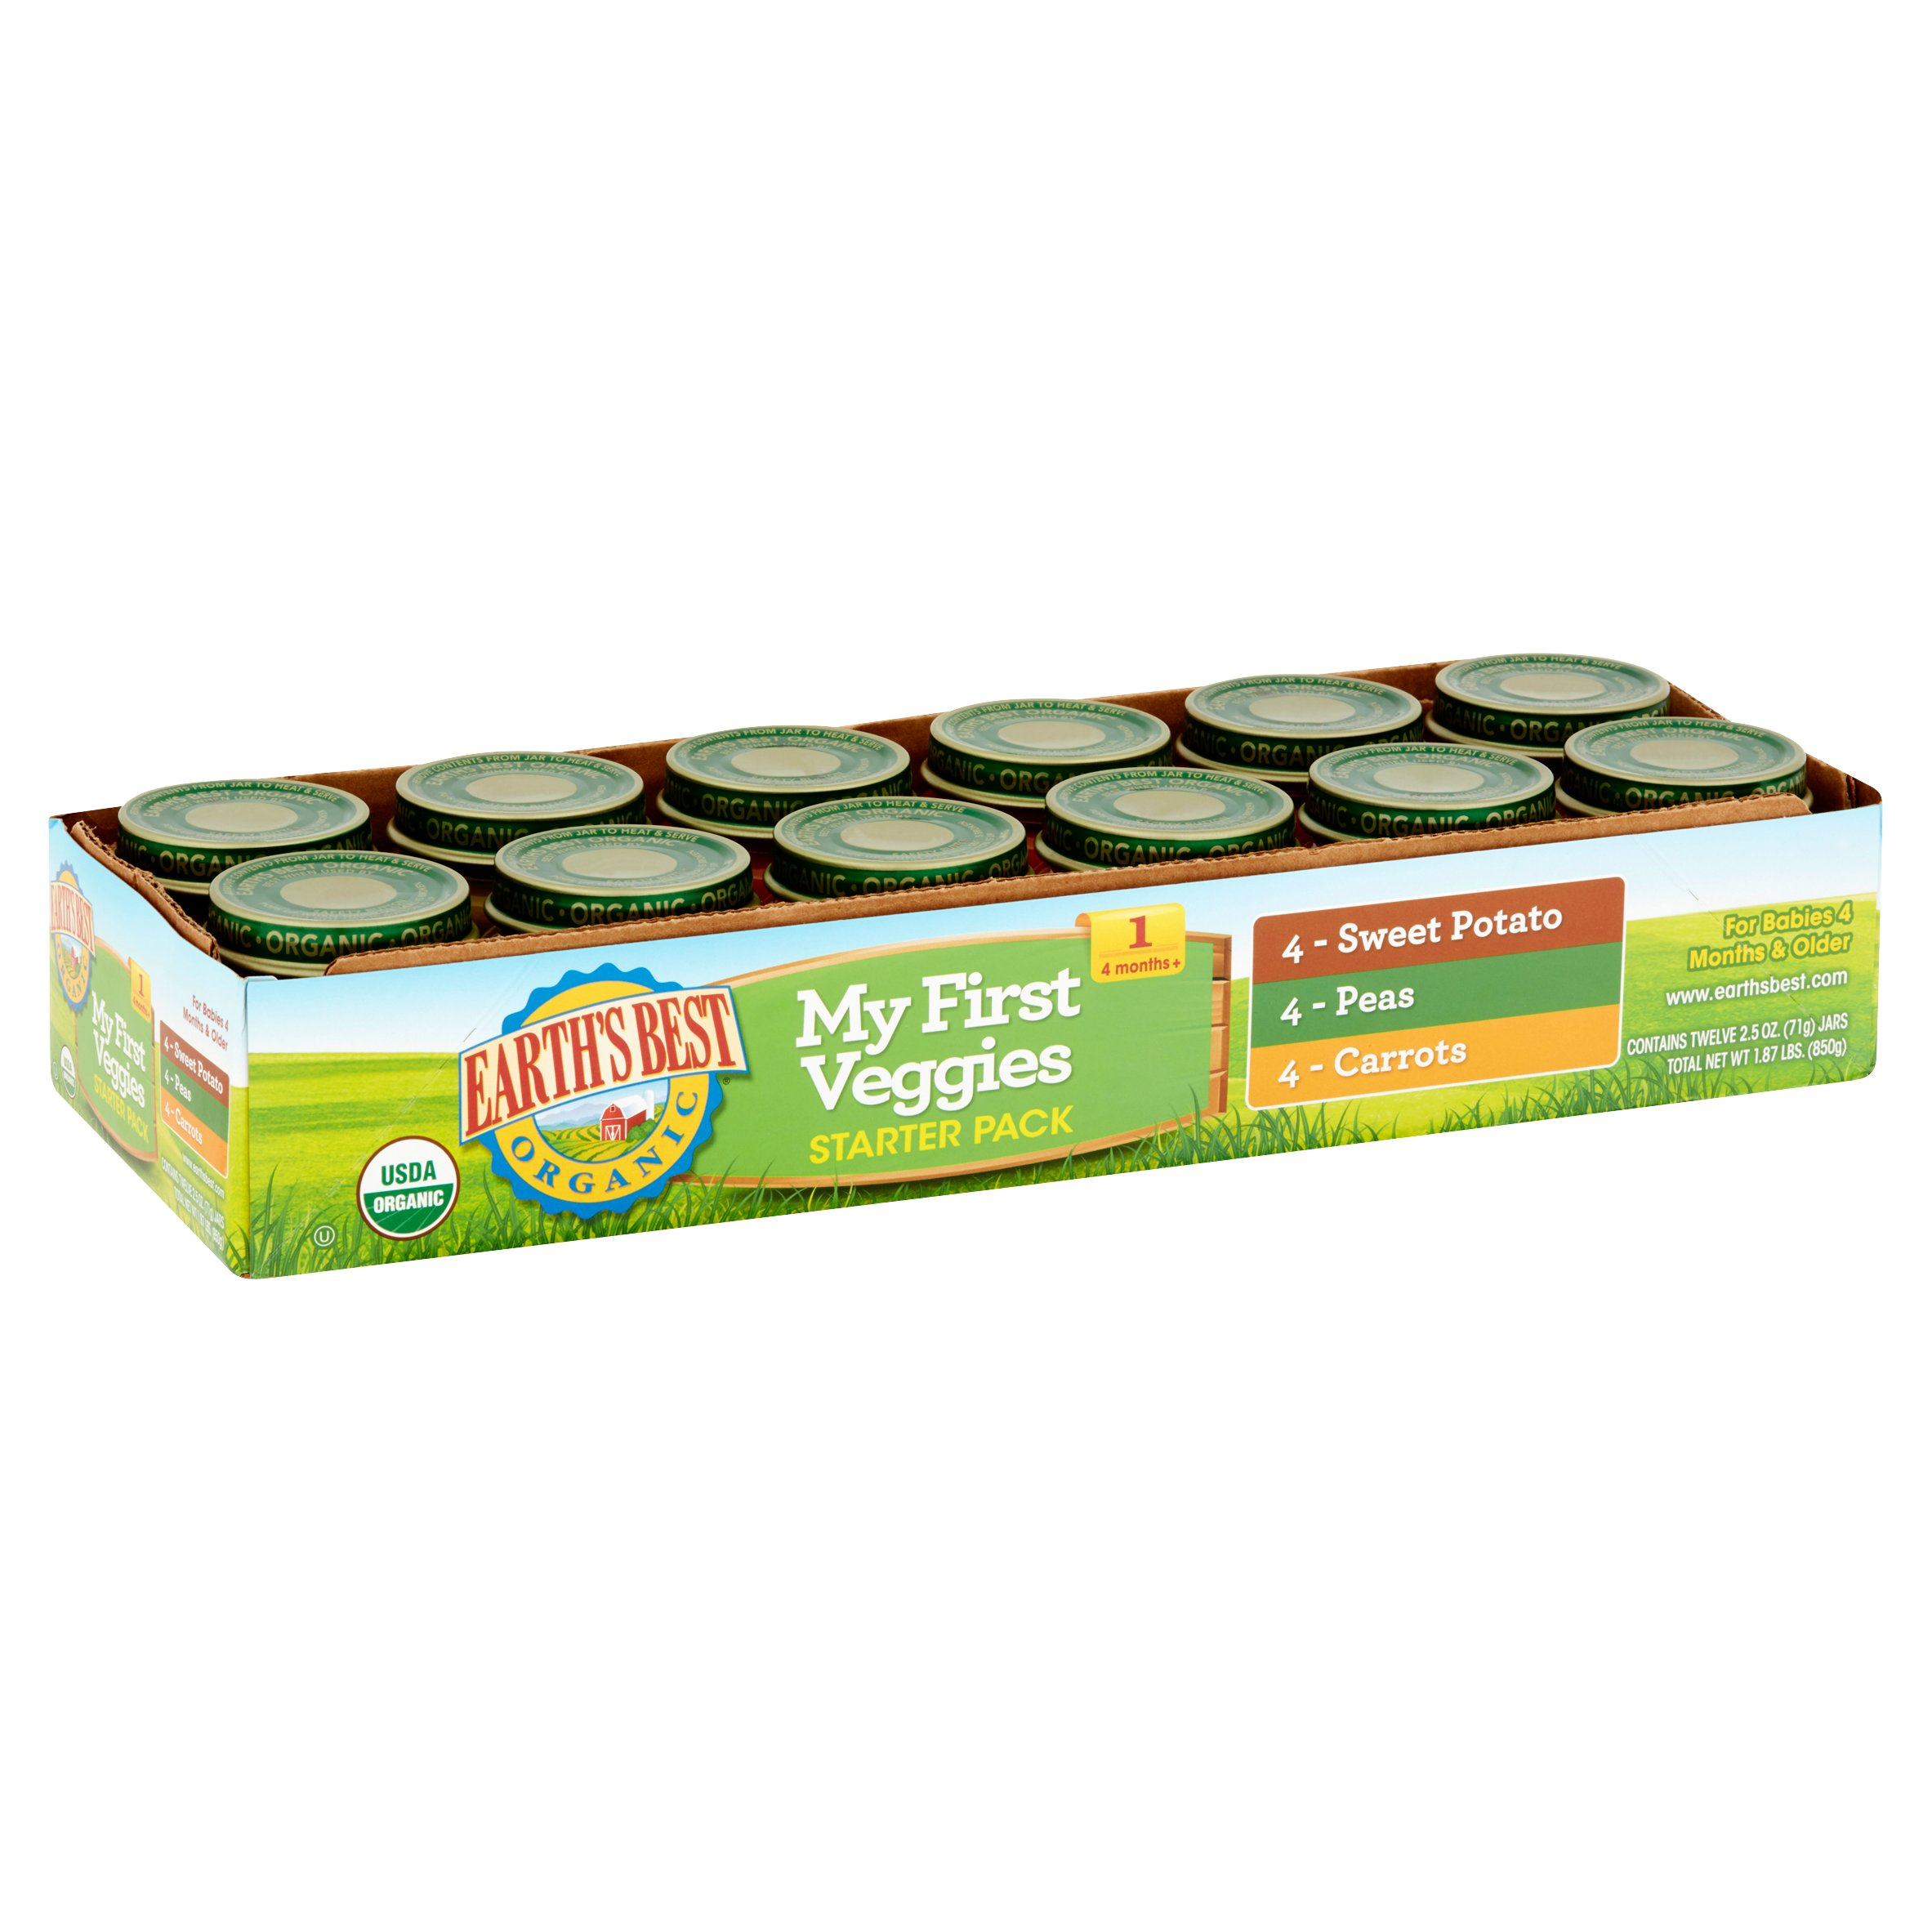 Earth's Best Organic My First Veggies Starter Pack Organic Baby Food, 2.5 oz, 12 count